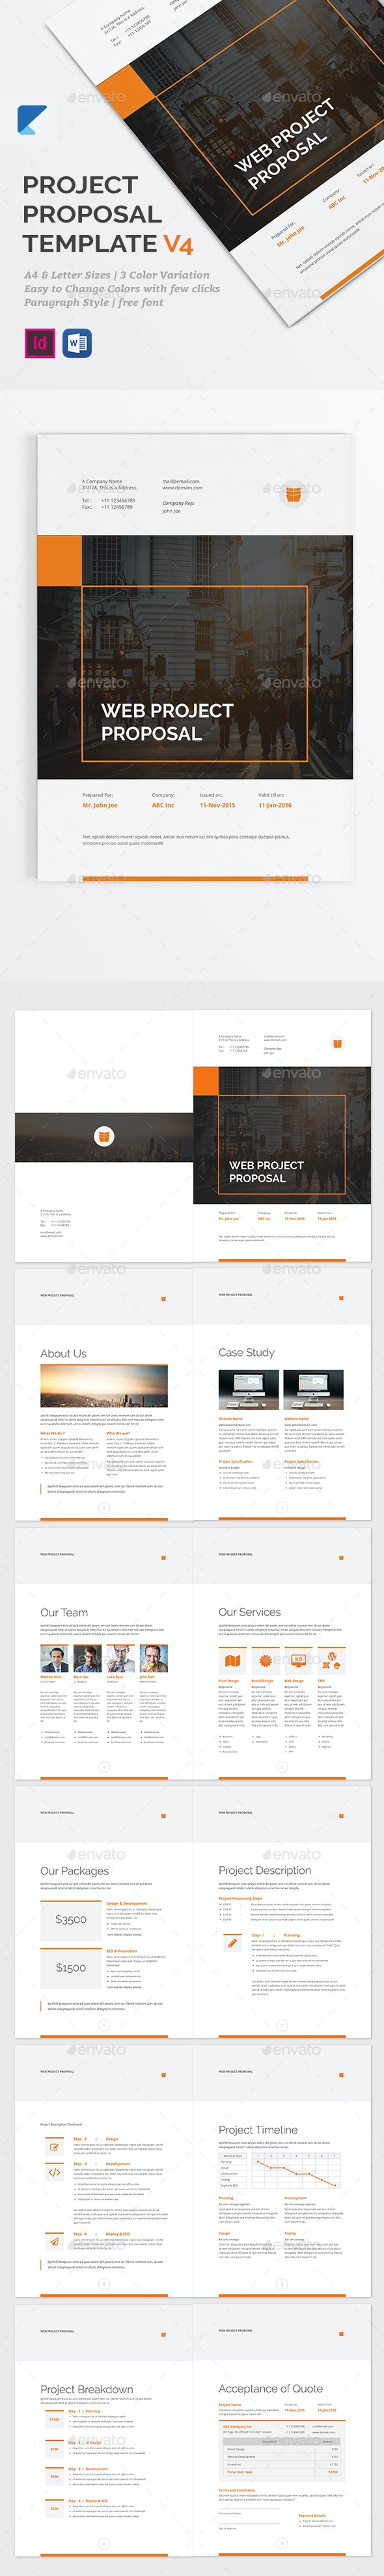 Project Proposal Template - V4 - Proposals & Invoices Stationery